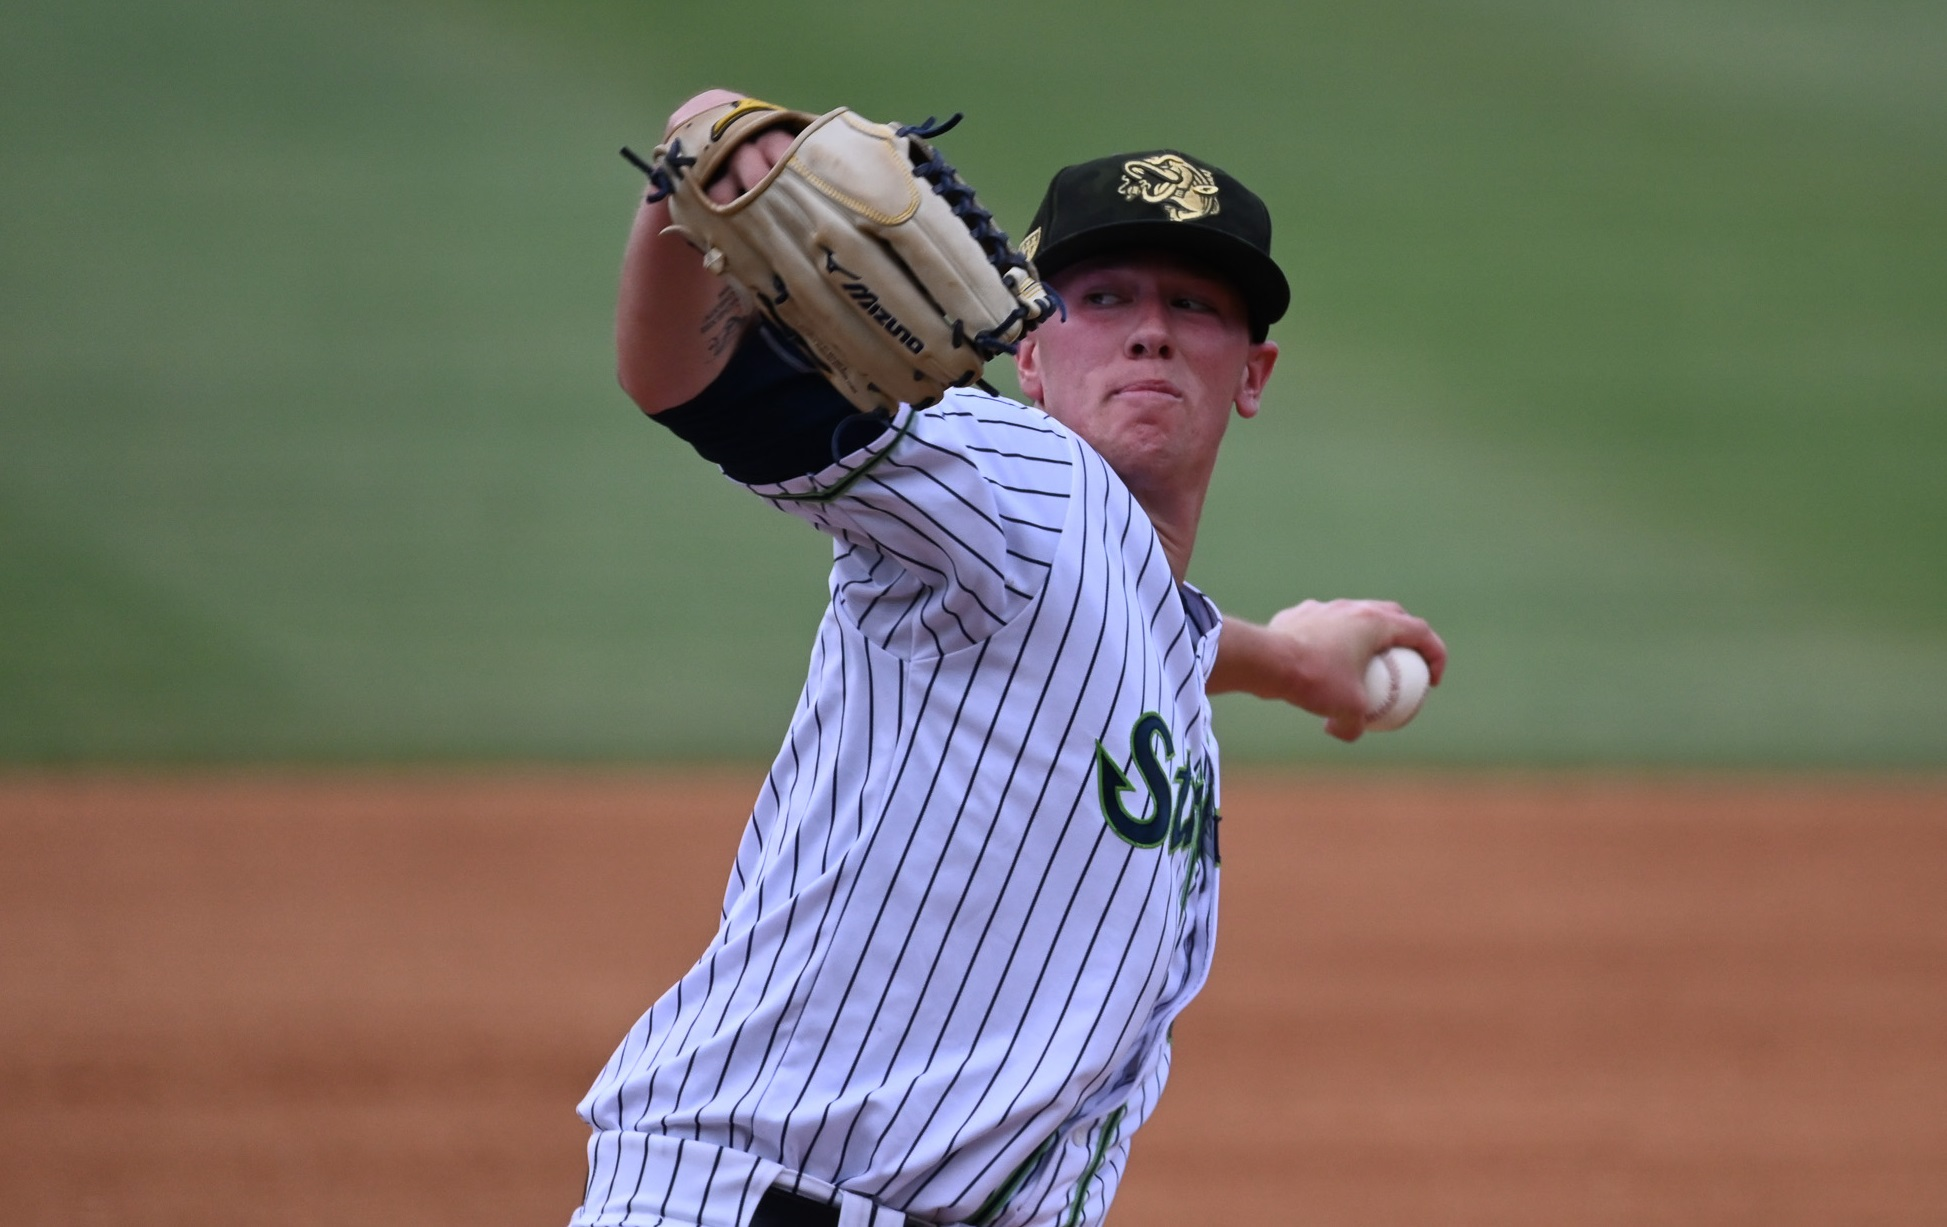 San Clemente alum Kolby Allard pitched his last game in the Atlanta Braves system for the AAA Gwinnett Stripers on July 27. Allard was traded to the Texas Rangers on Tuesday, July 30 and will pitch for the AAA Nashville Sounds. Photo: Jamie Spaar/Gwinnett Stripers